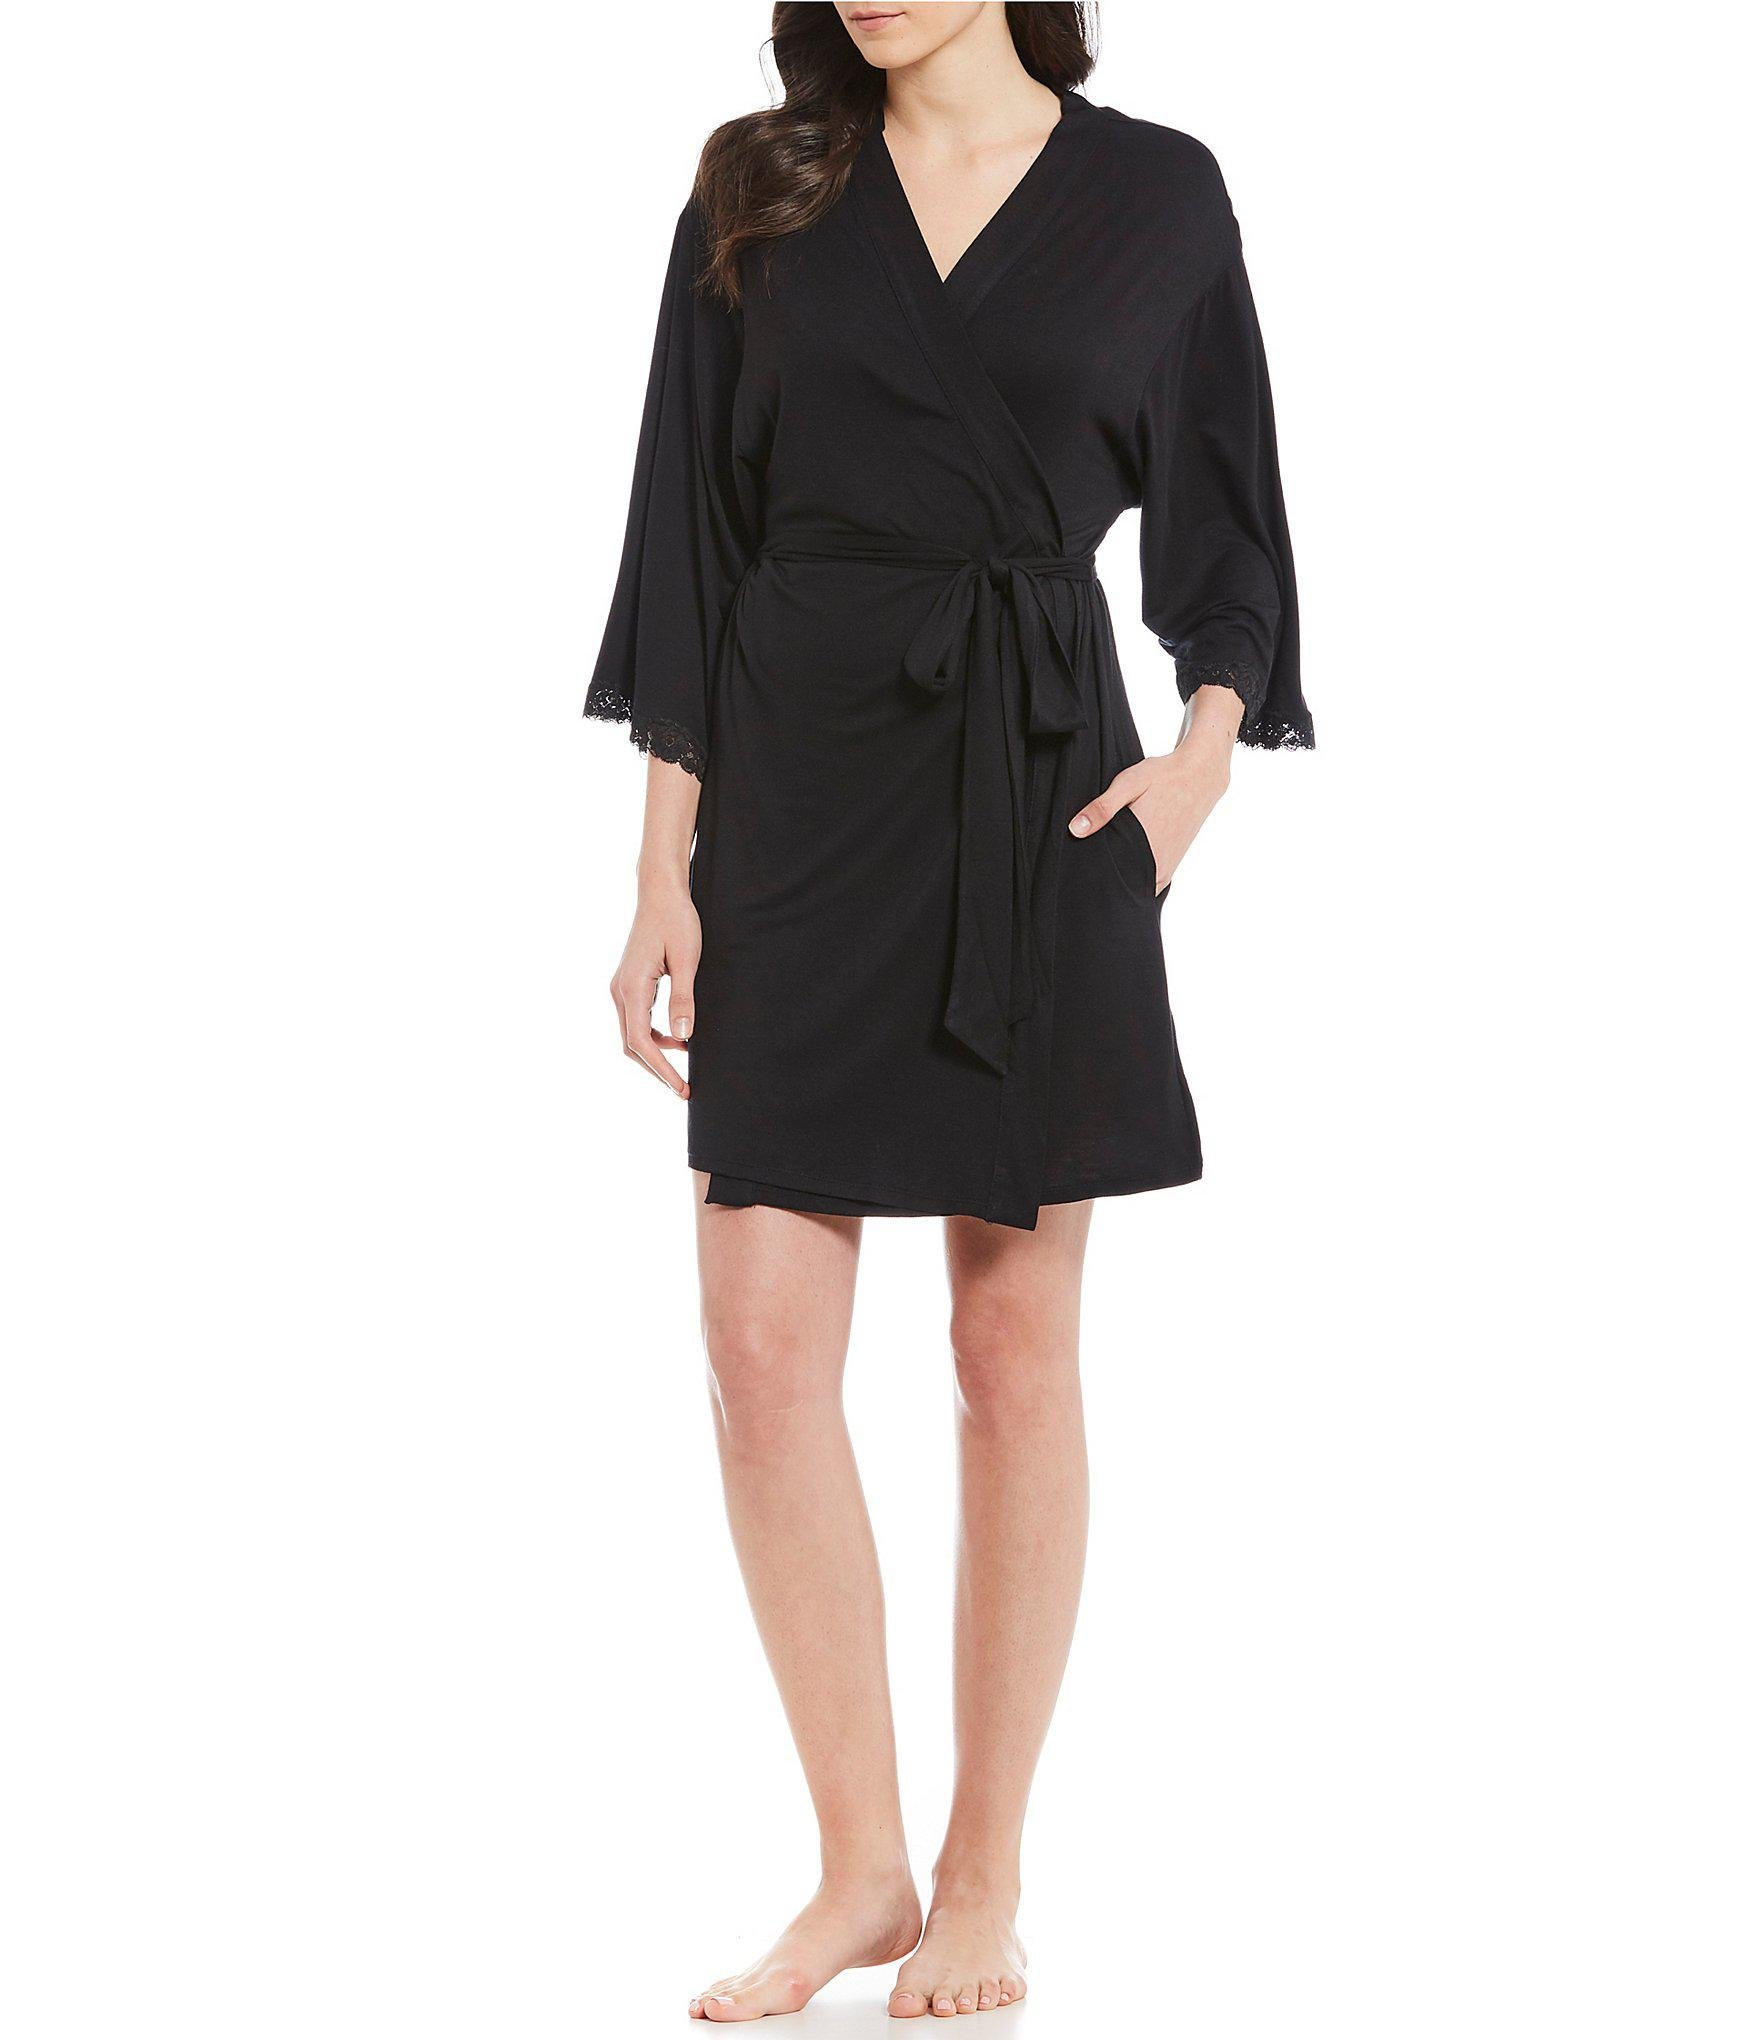 83fca50952 Lyst - Betsey Johnson Solid Woven Short Wrap Robe in Black